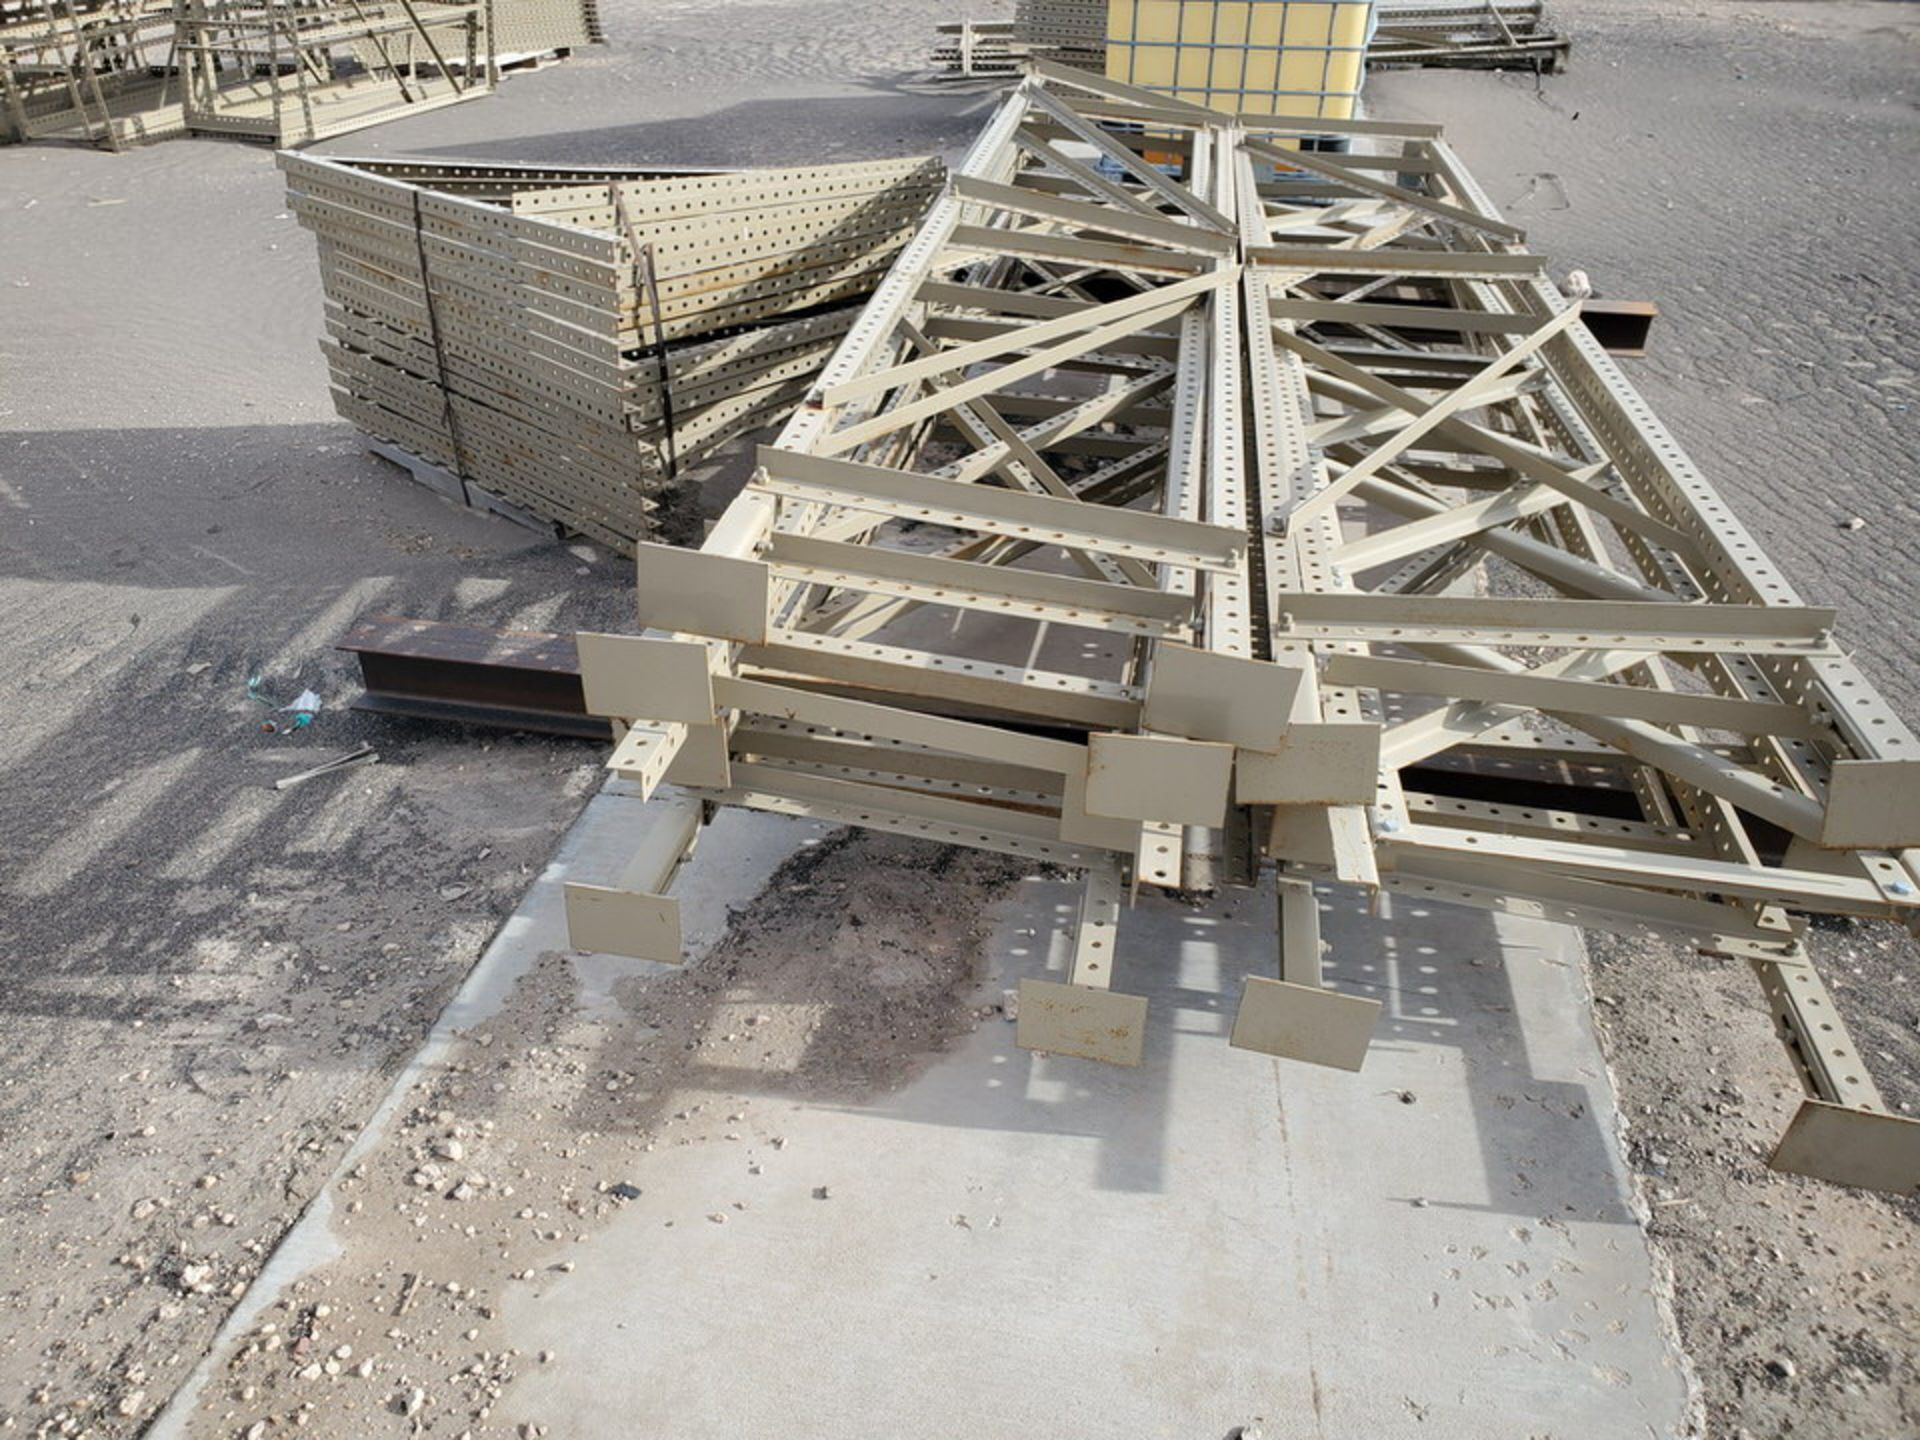 Disassembled Catwalk Sections - Image 13 of 20